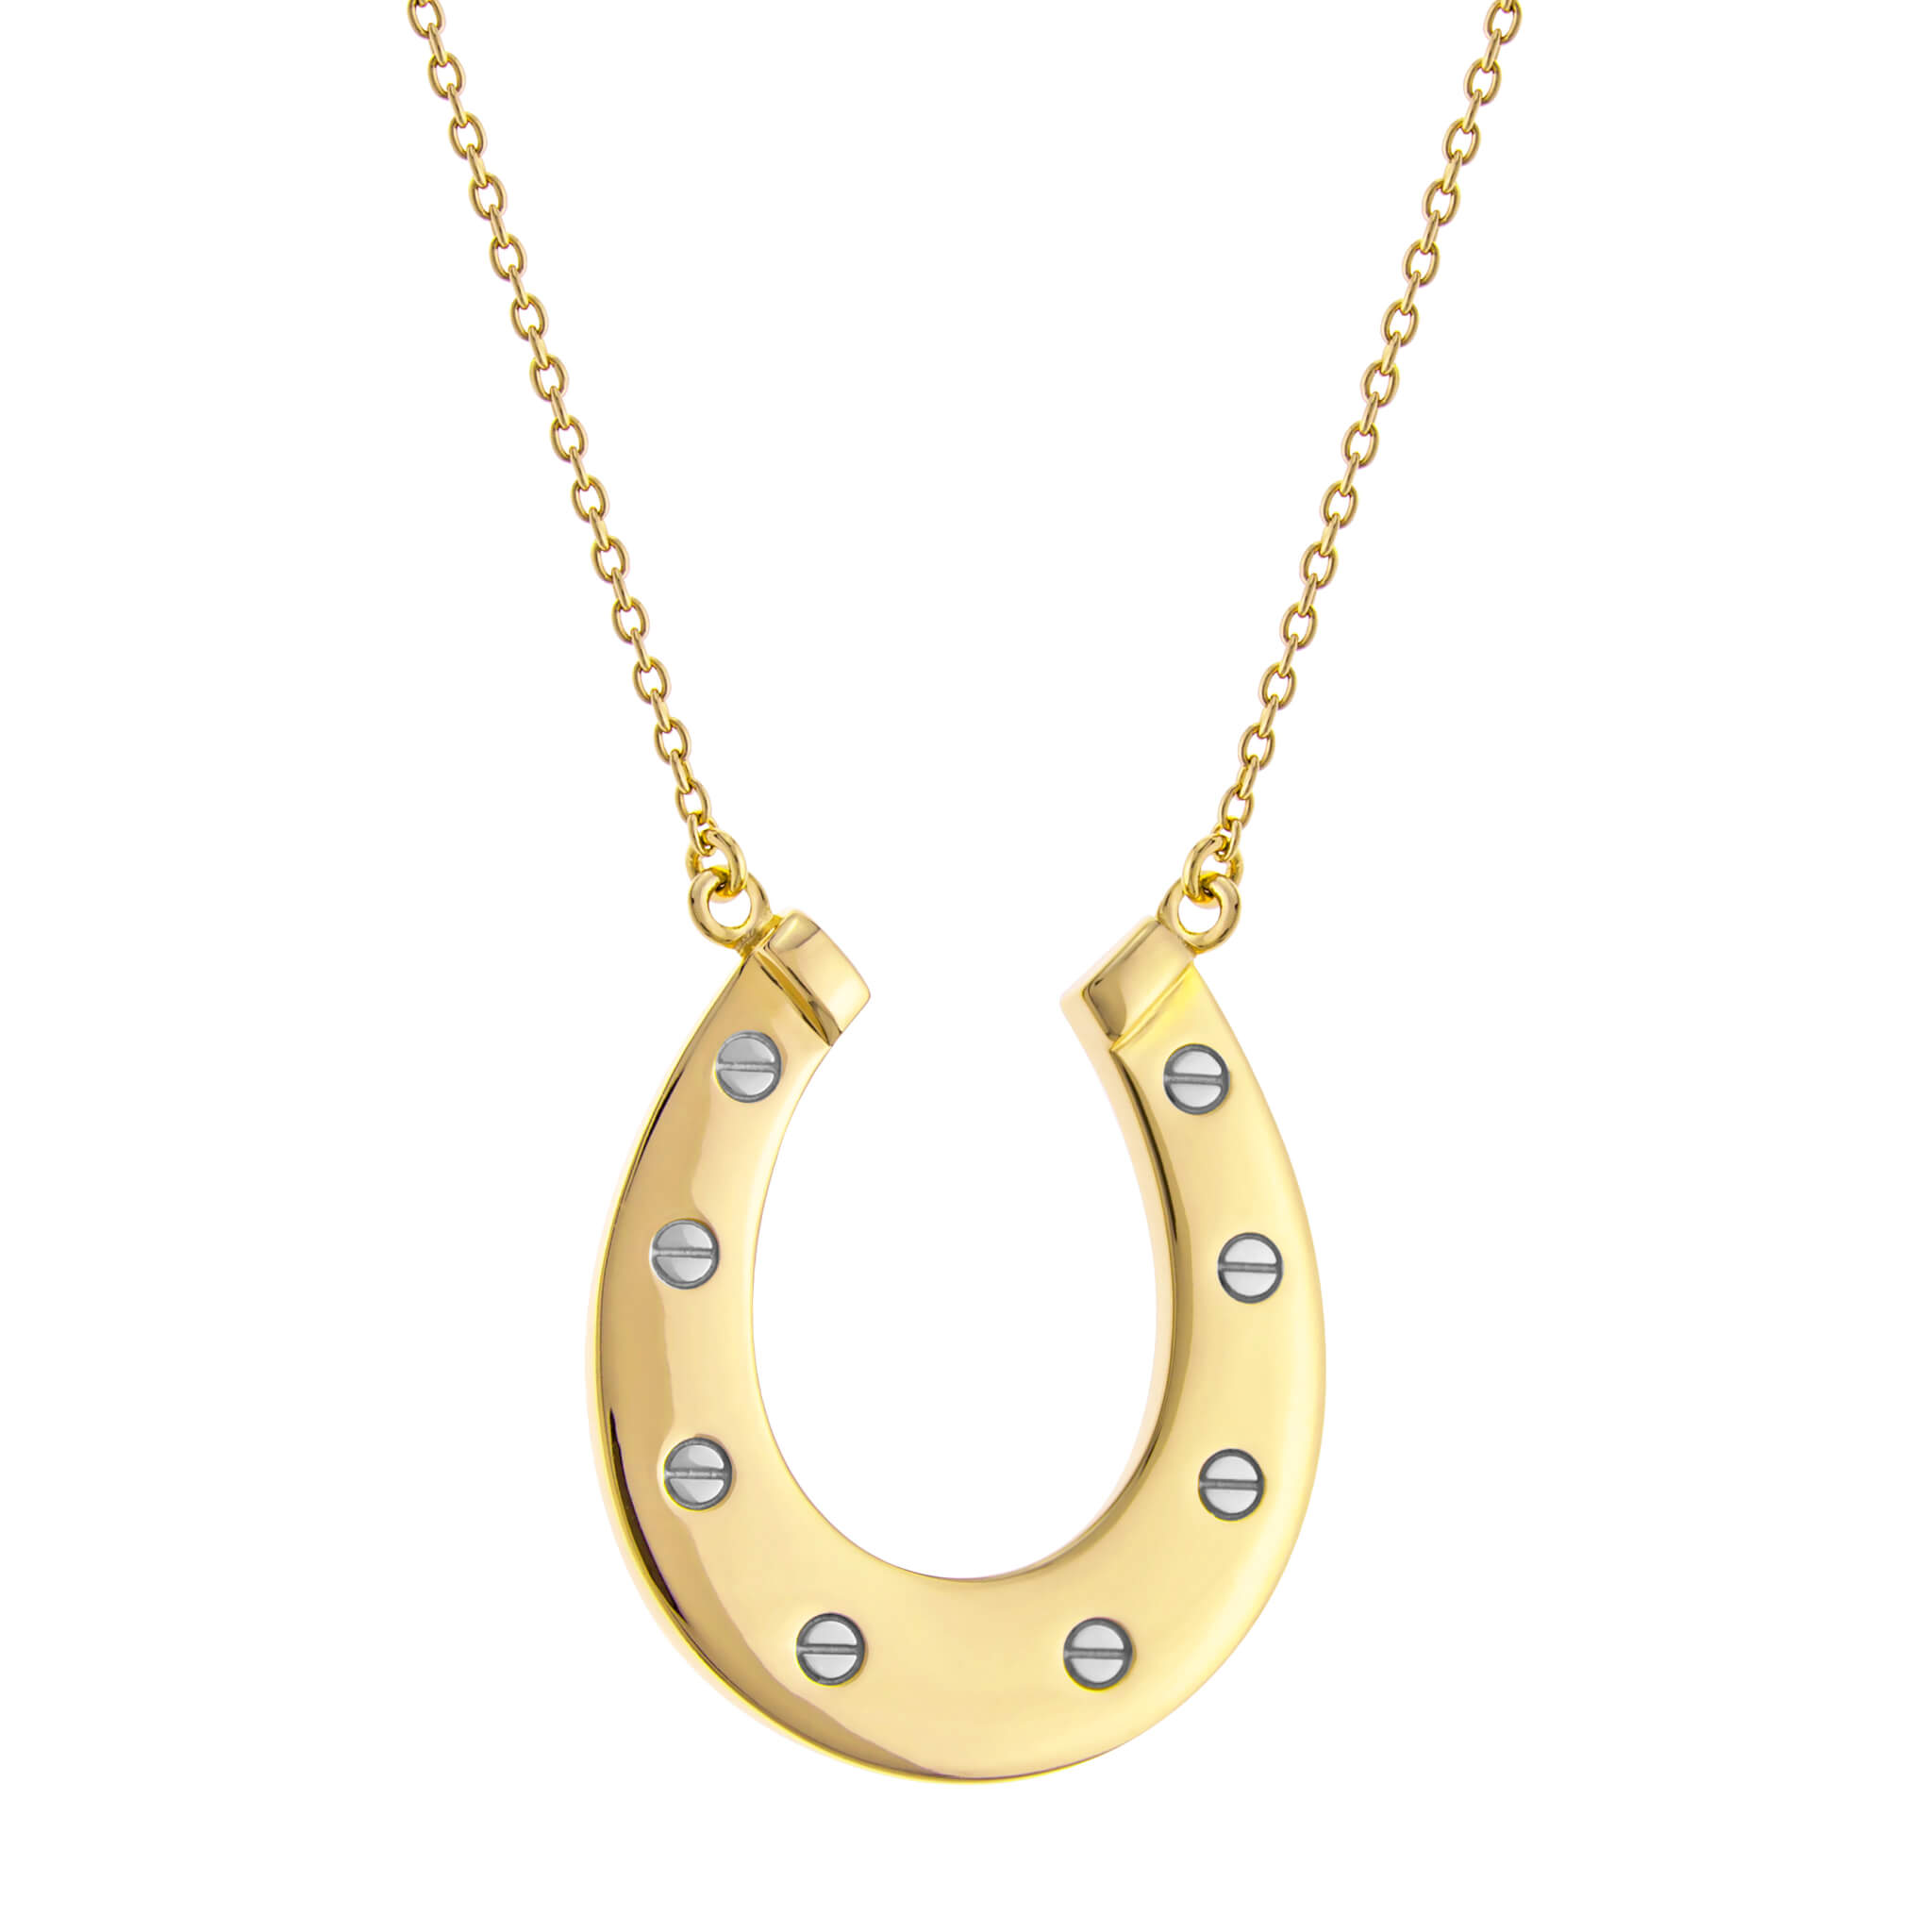 2 TONE YELLOW GOLD/SILVER HORSESHOE – LARGE PENDANT